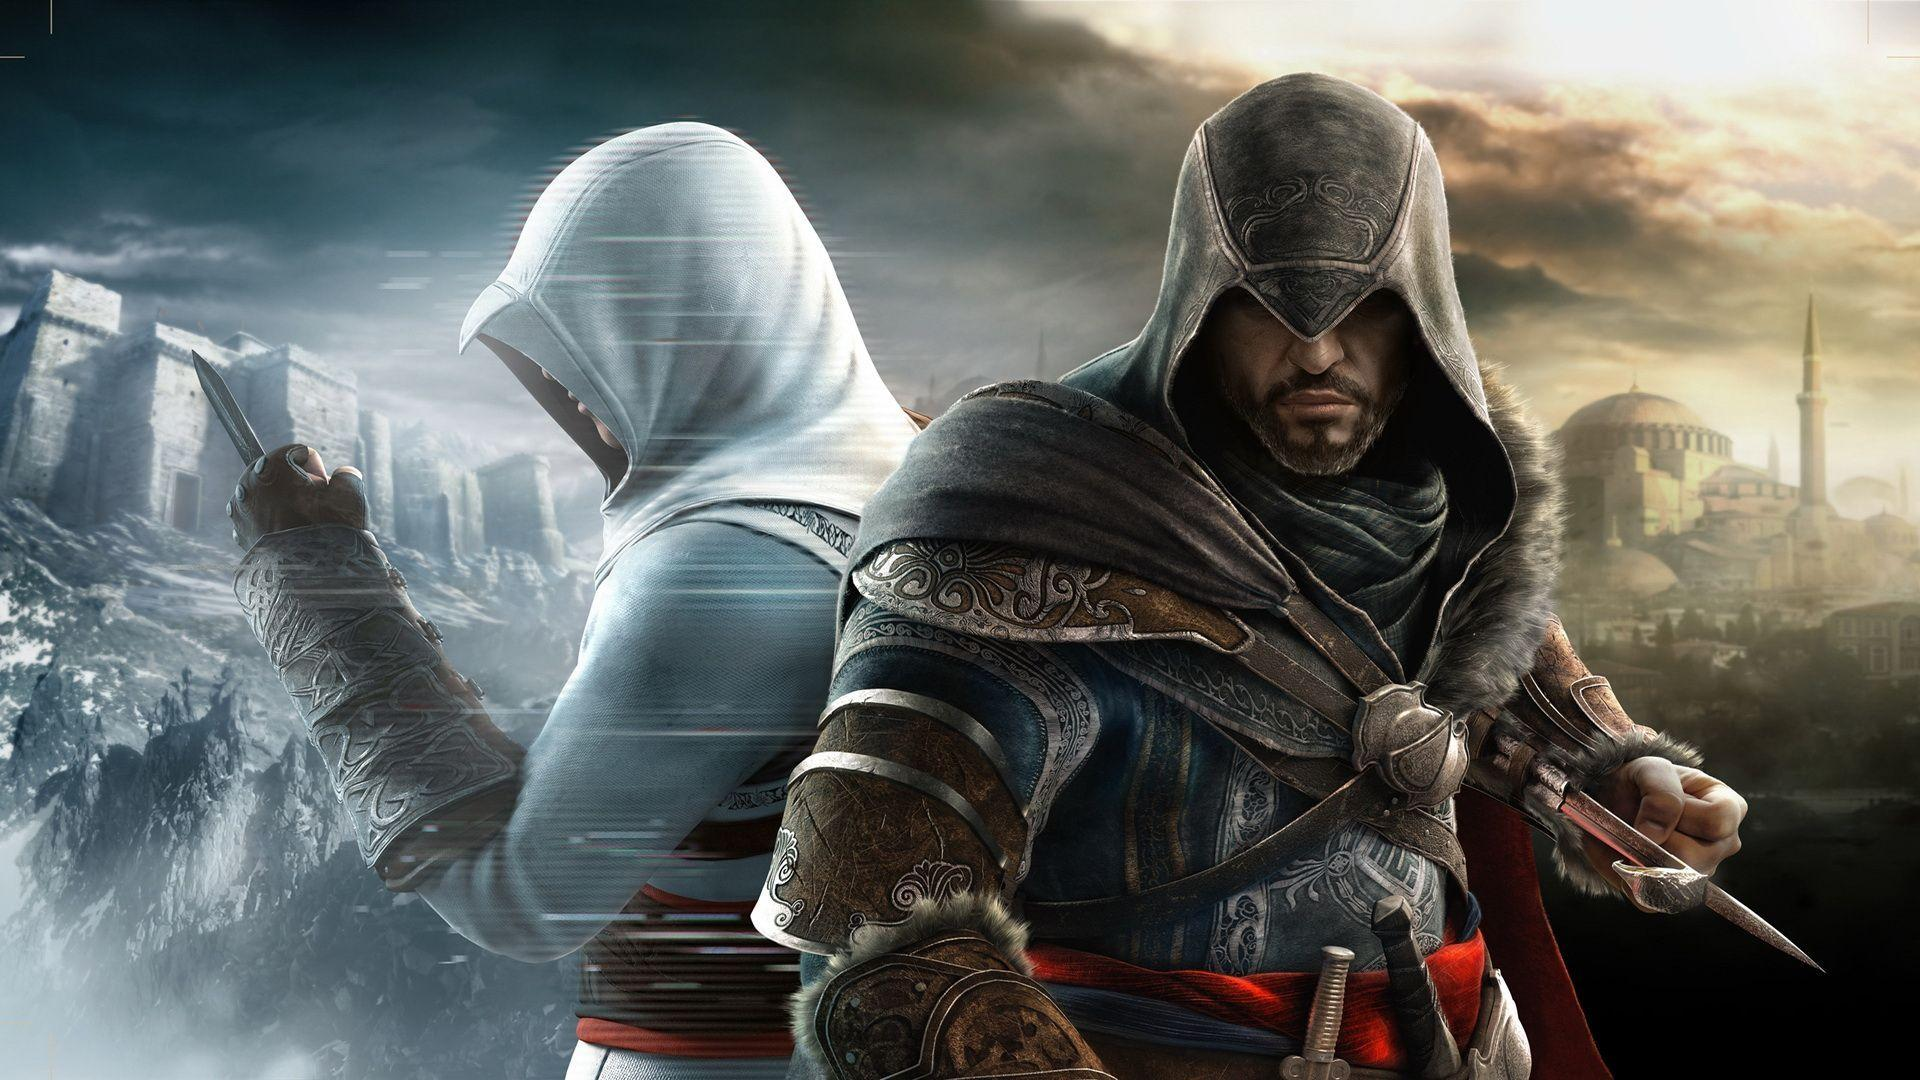 Assassins Creed Revelations Wallpapers Playstation Wallpapers